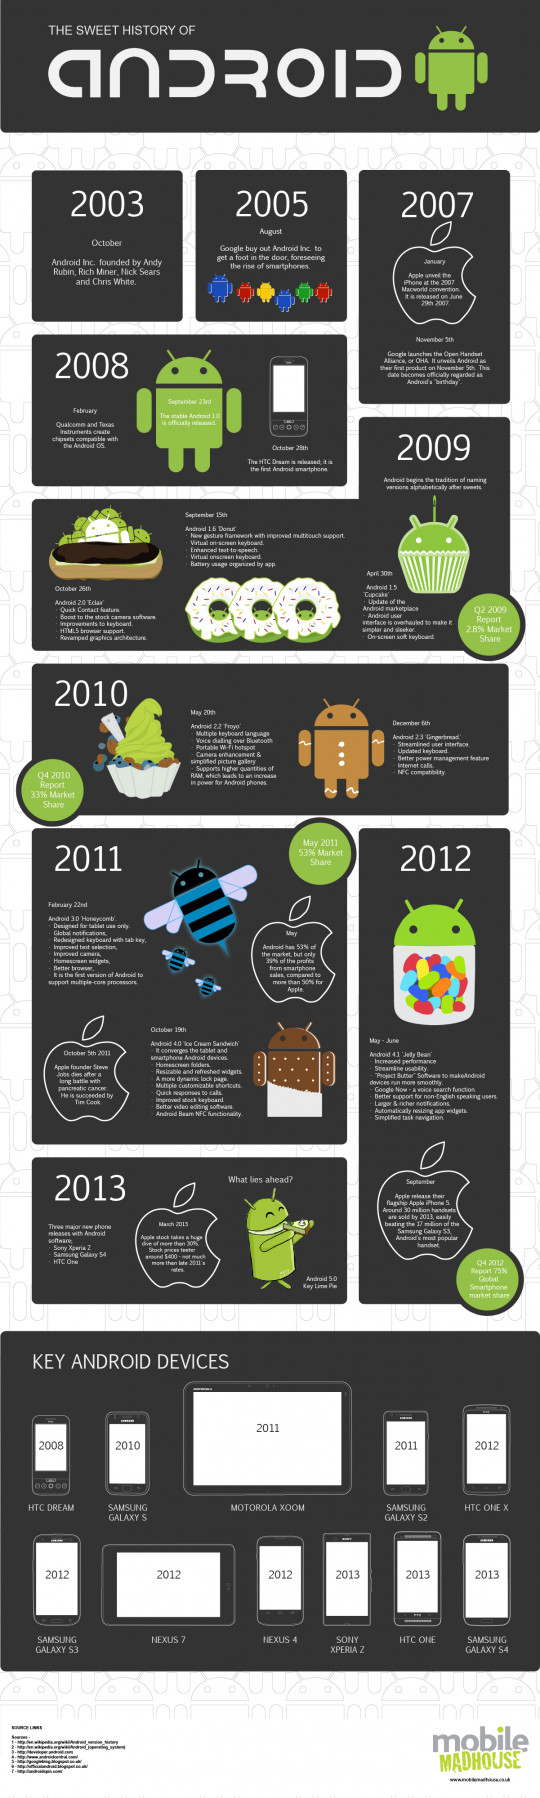 The Sweet History Of Android